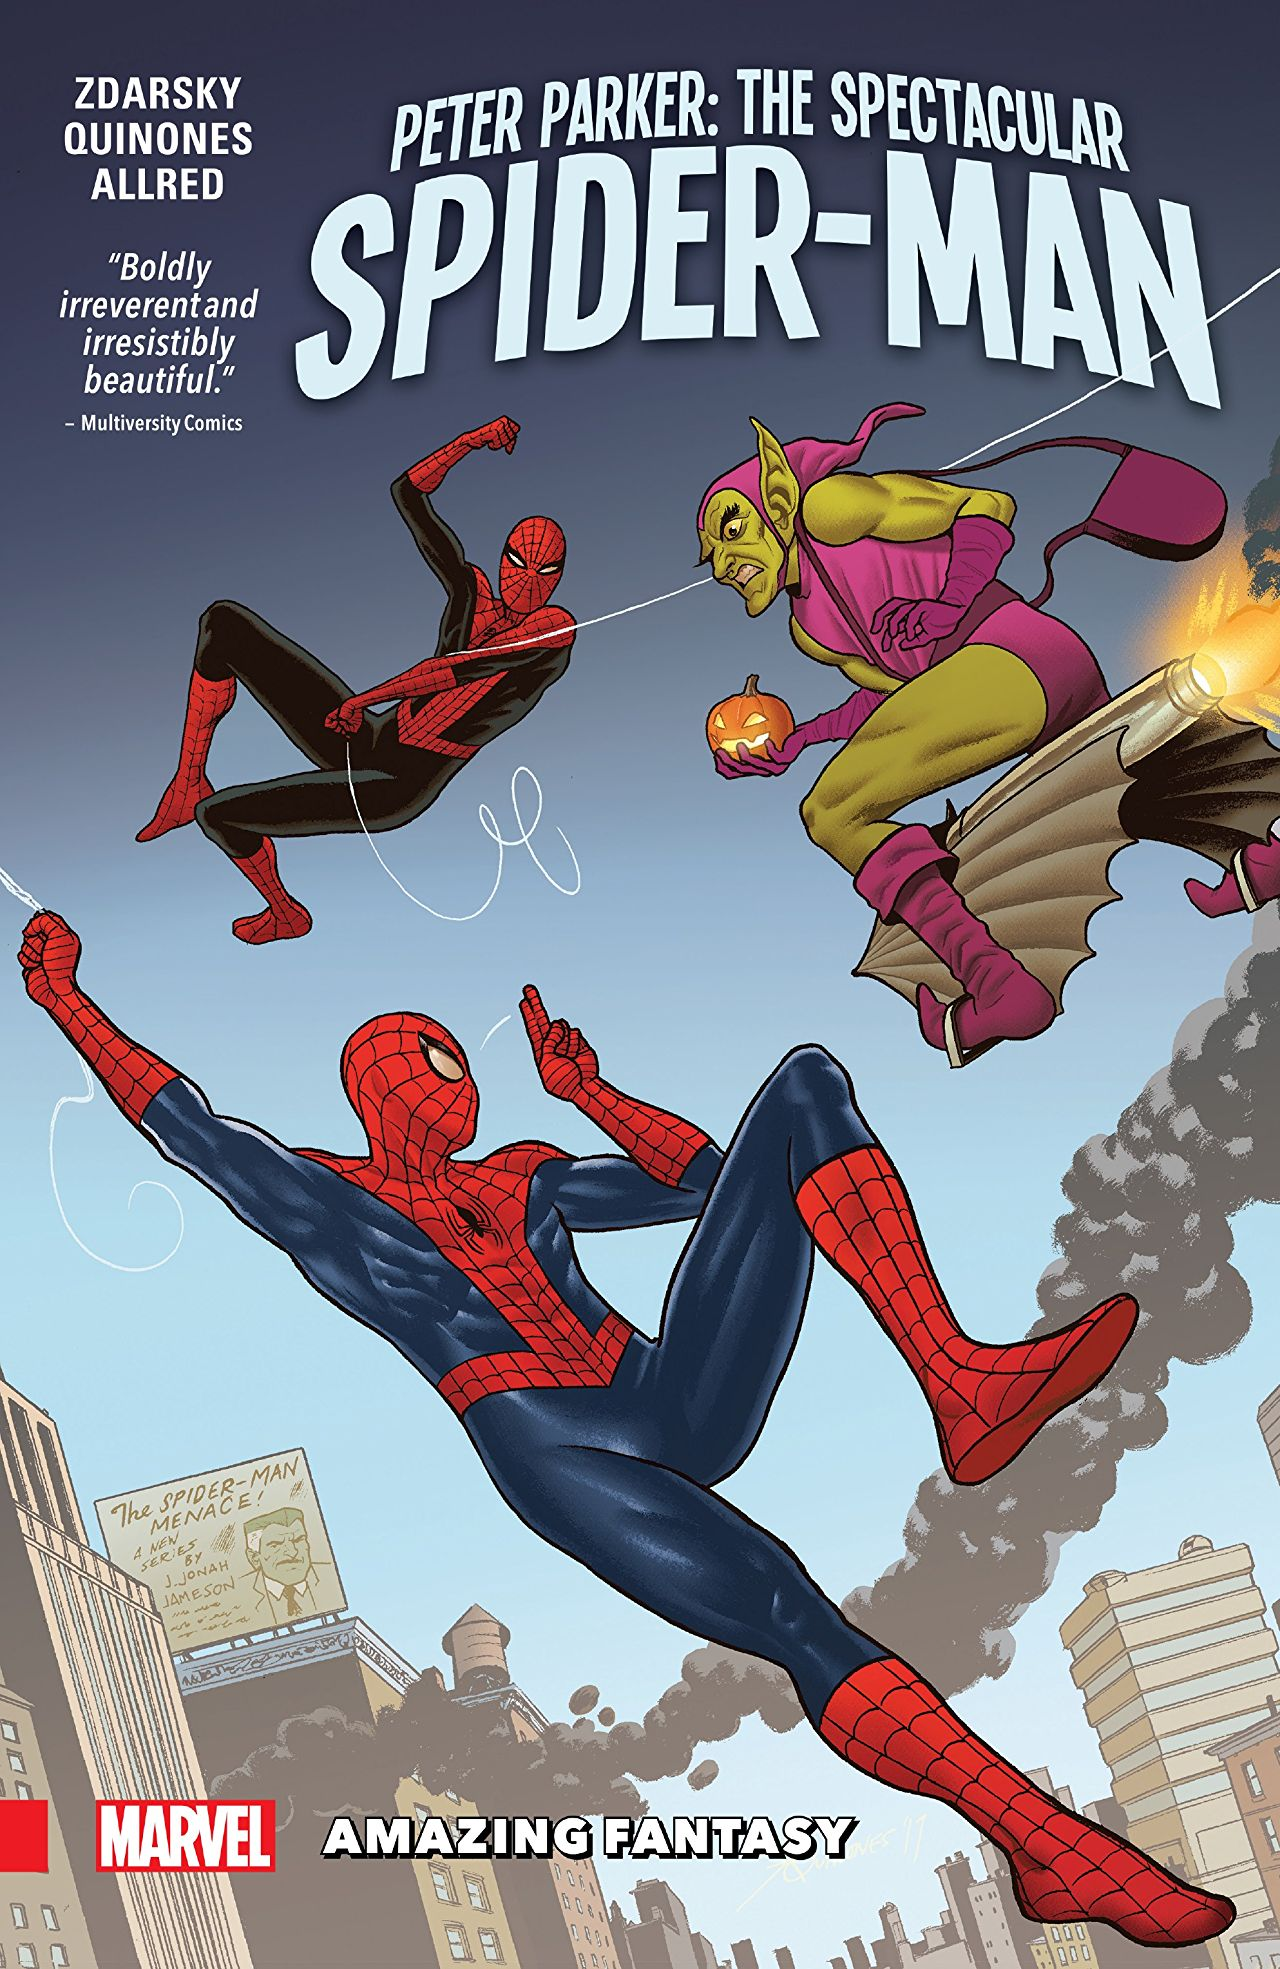 'Peter Parker: The Spectacular Spider-Man Vol. 3: Amazing Fantasy' review: Gotta go back in time